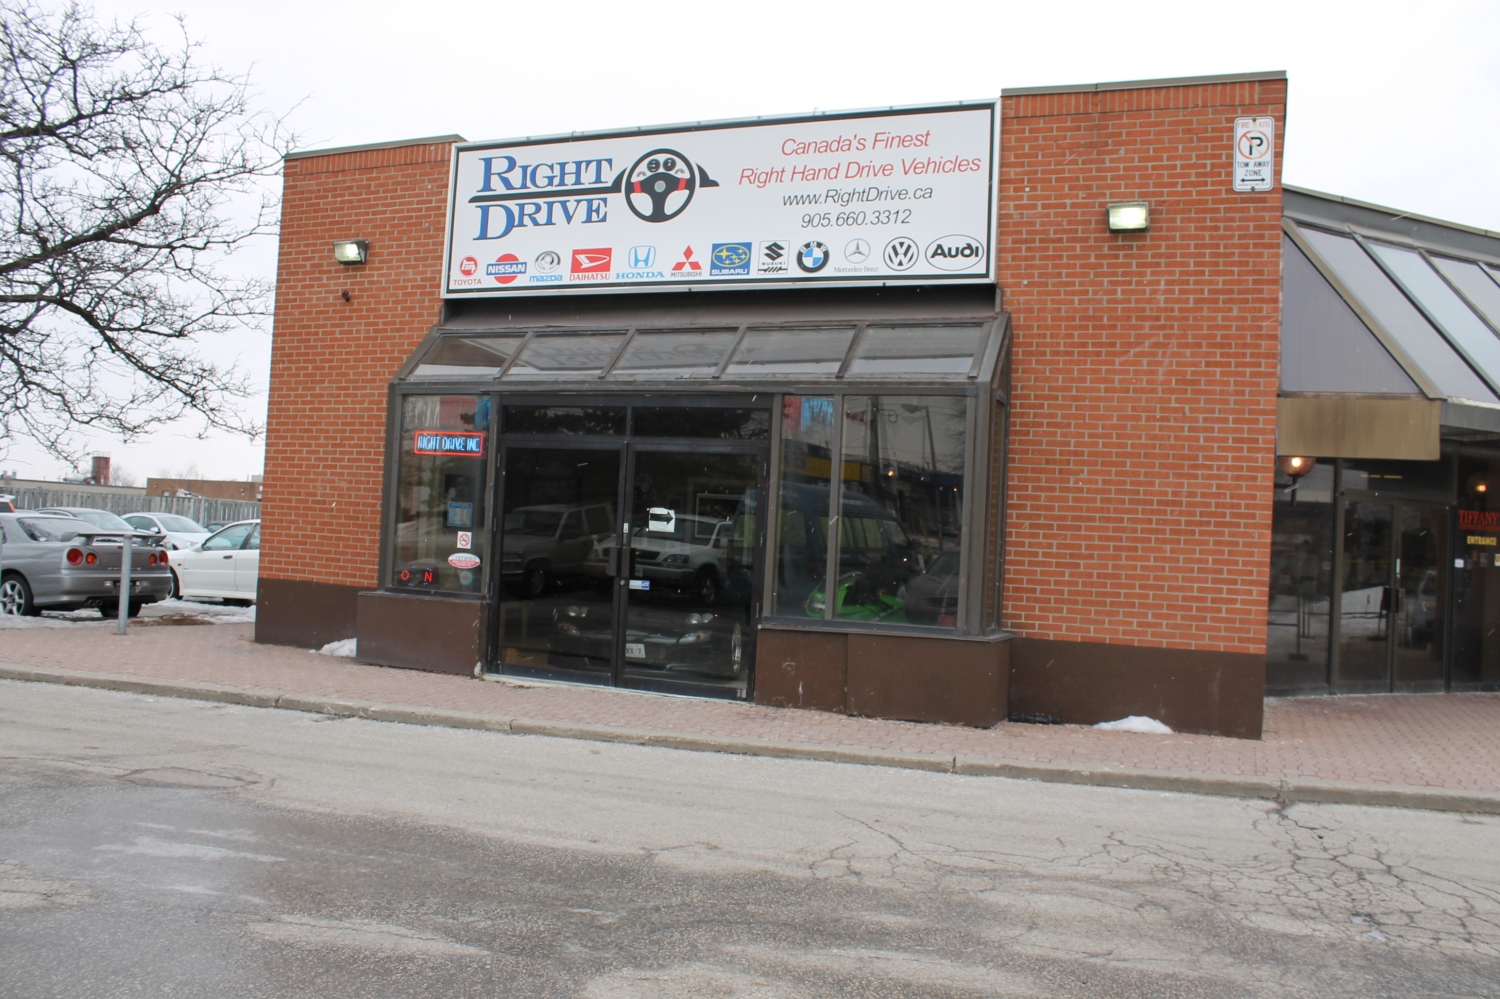 RightDrive HQ in Toronto. I already know I could spend all day here.